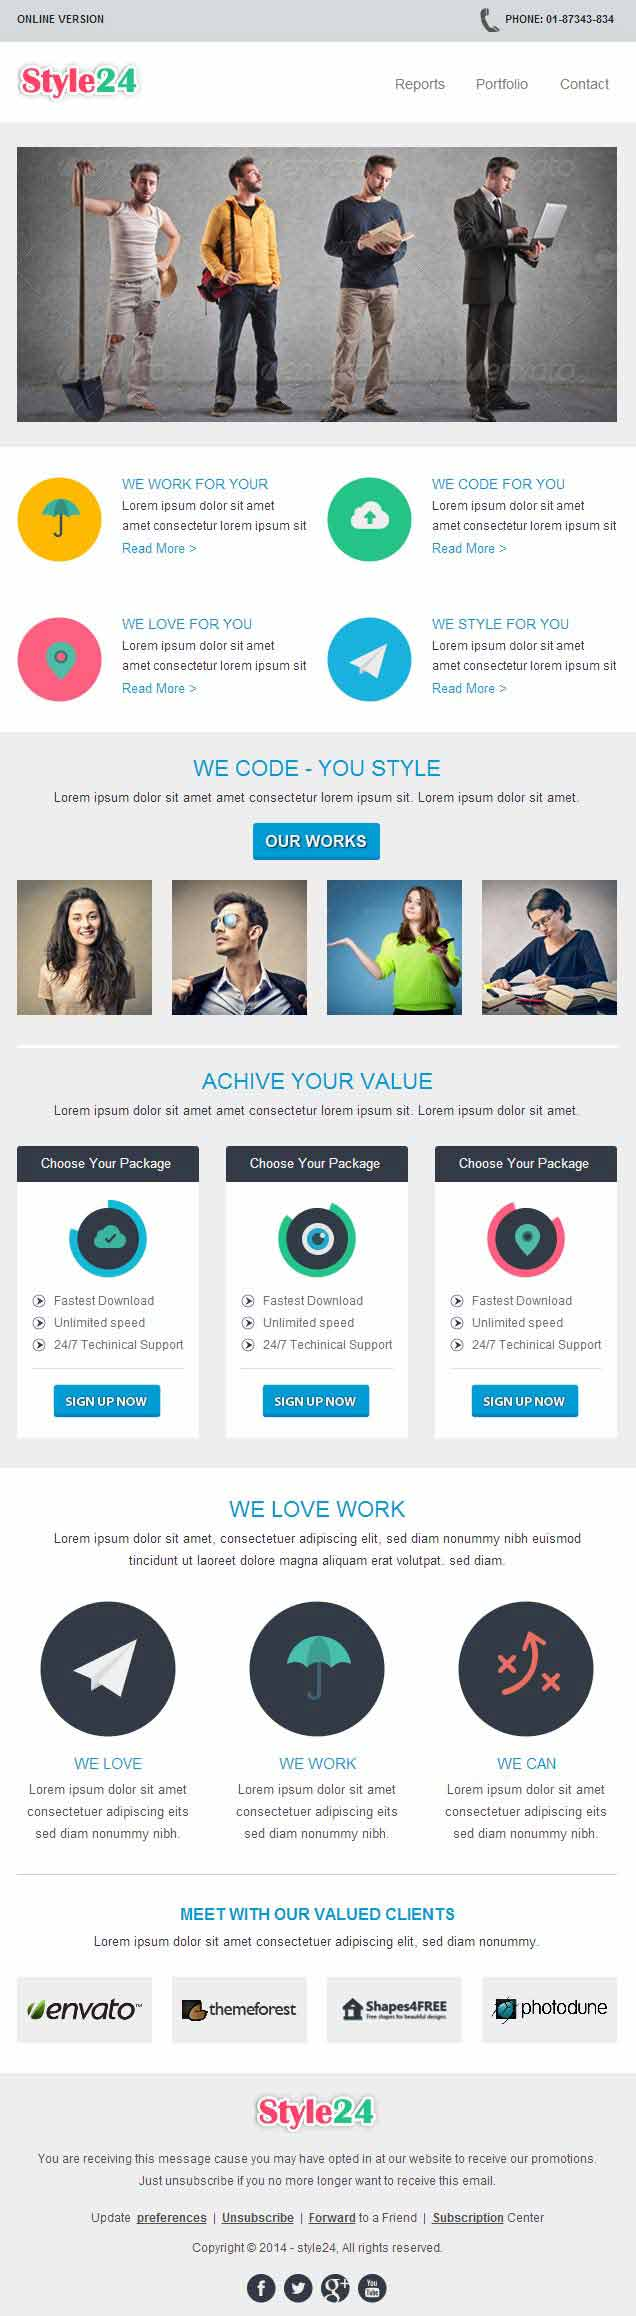 style24 Professional Responsive Email Template